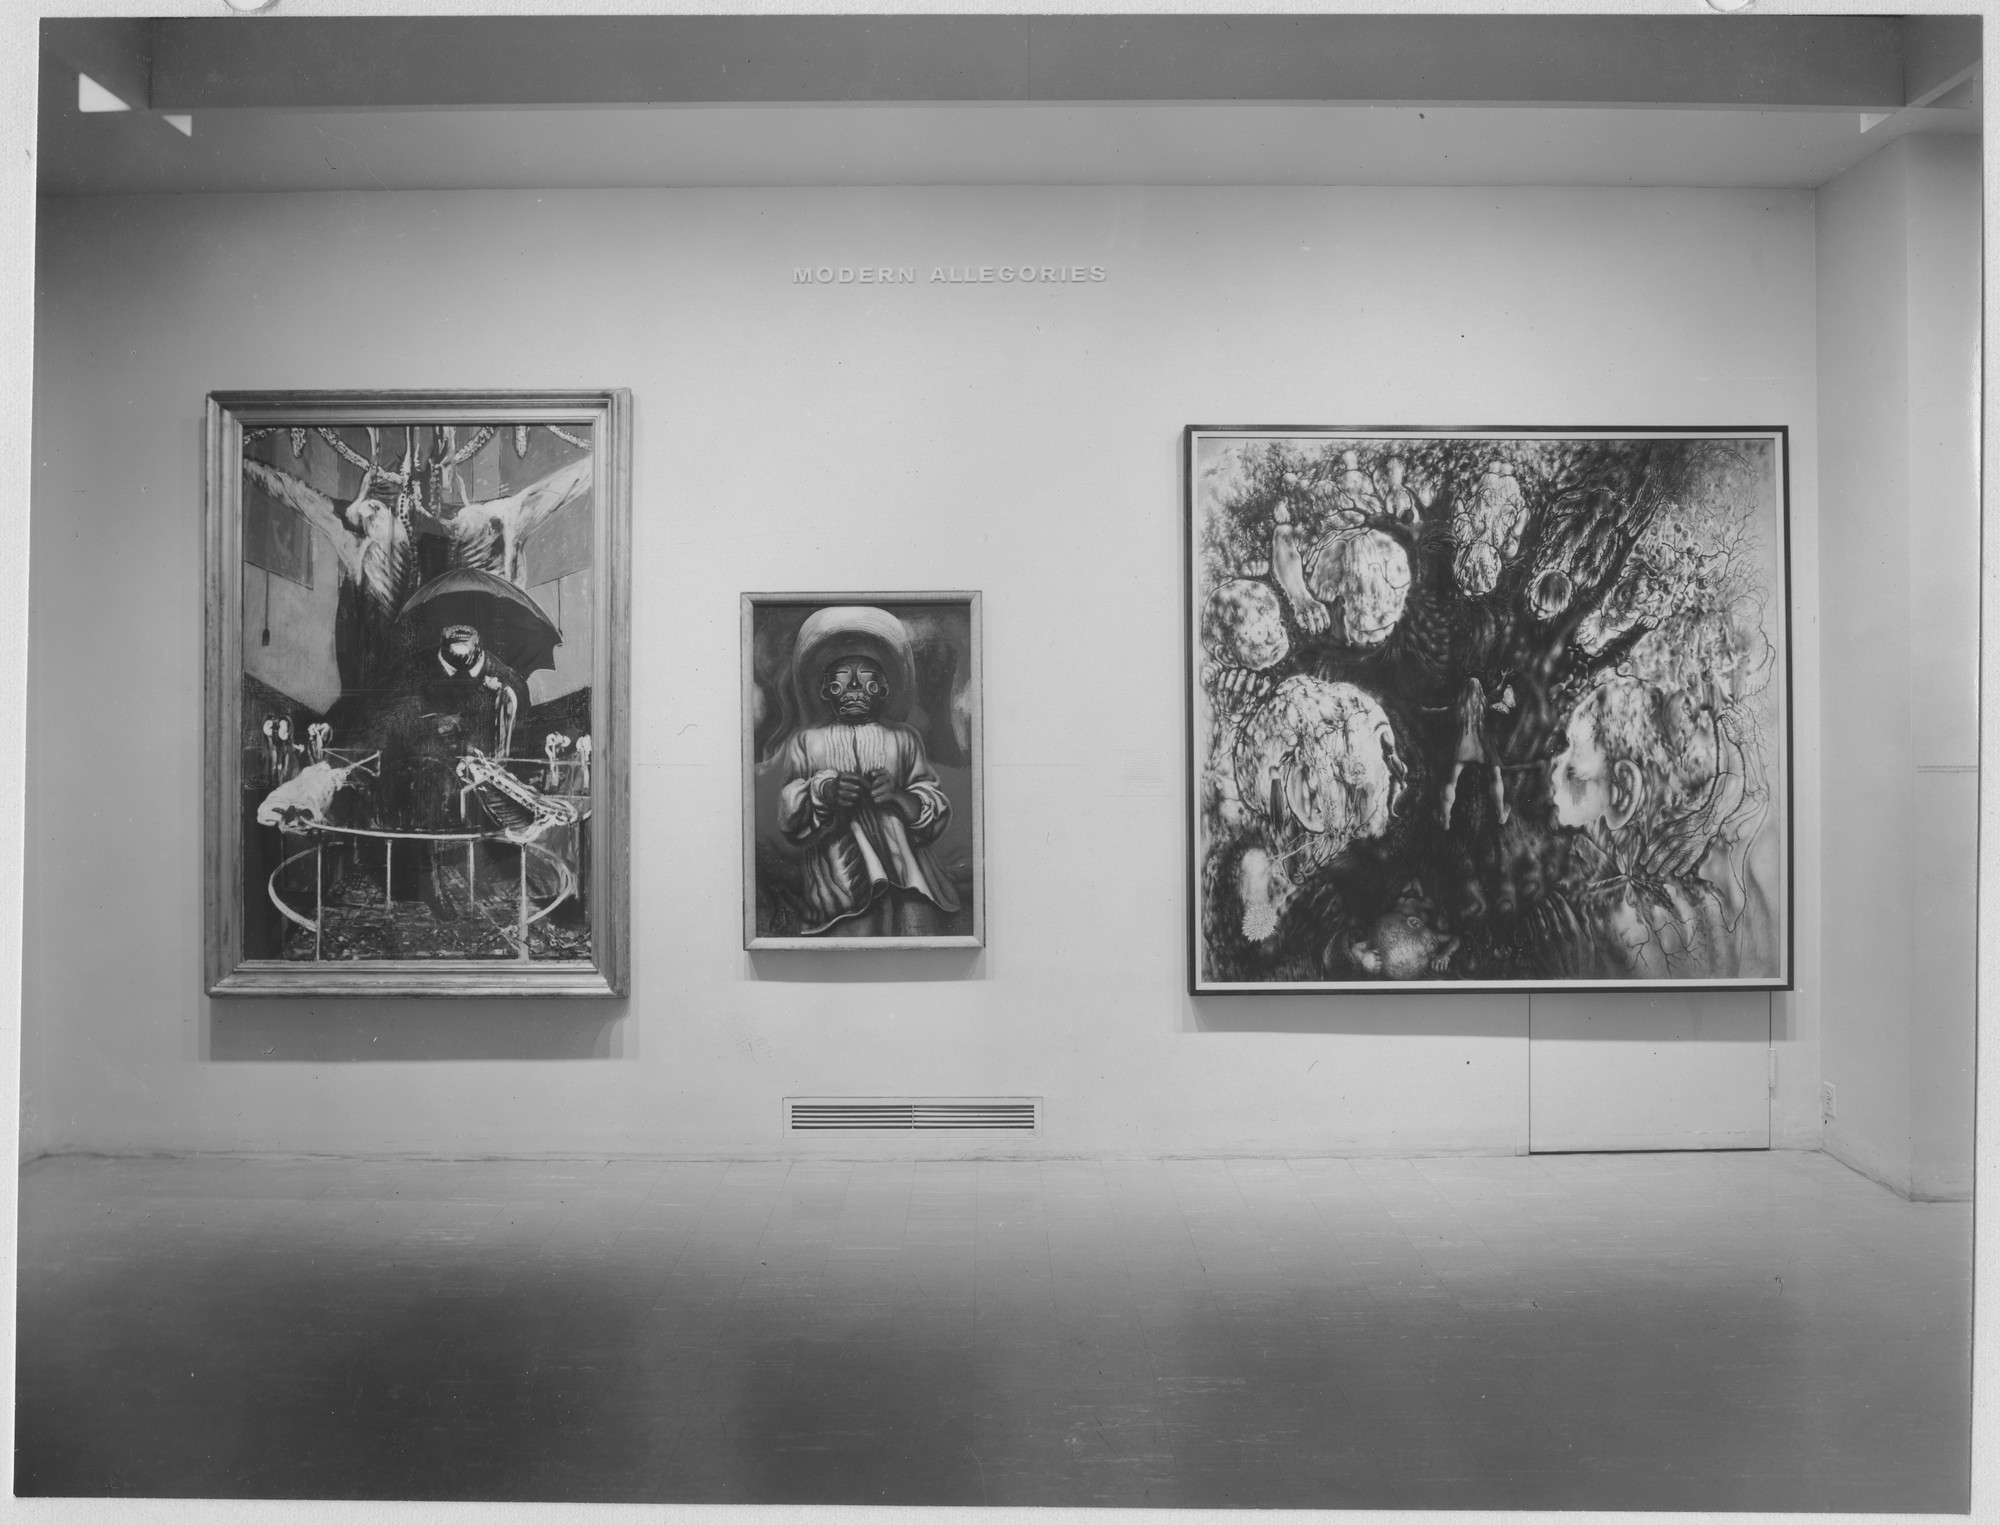 "Installation view of the exhibition, ""Modern Allegories (Collection)."" August 19, 1962–January 30, 1963. Photographic Archive. The Museum of Modern Art Archives, New York. IN693.1. Photograph by Soichi Sunami."